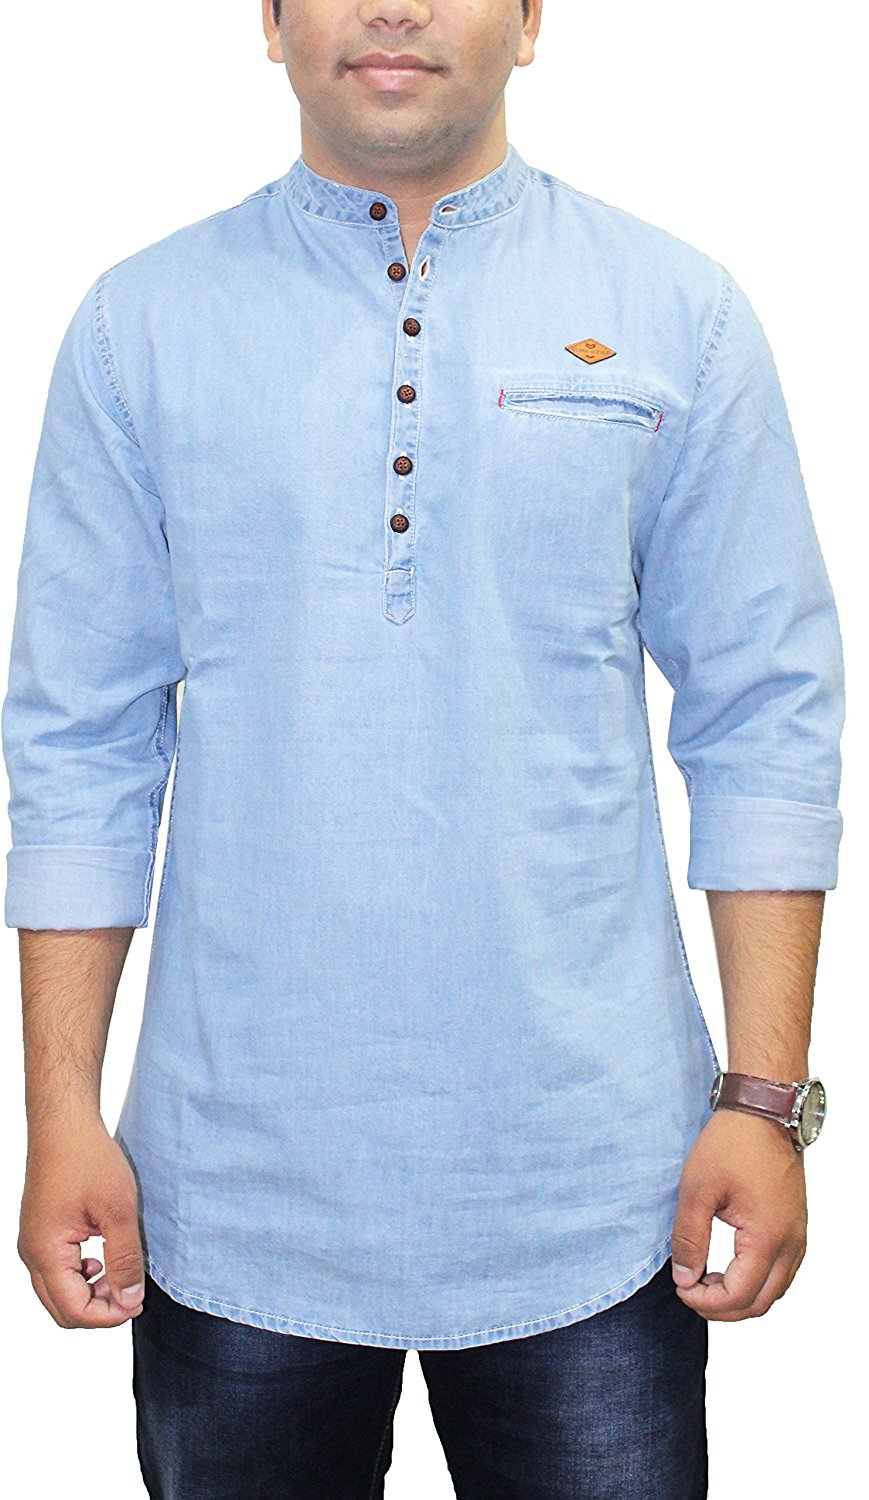 Long Sleeve Denim Shirts For Men | Denim Shirts for men